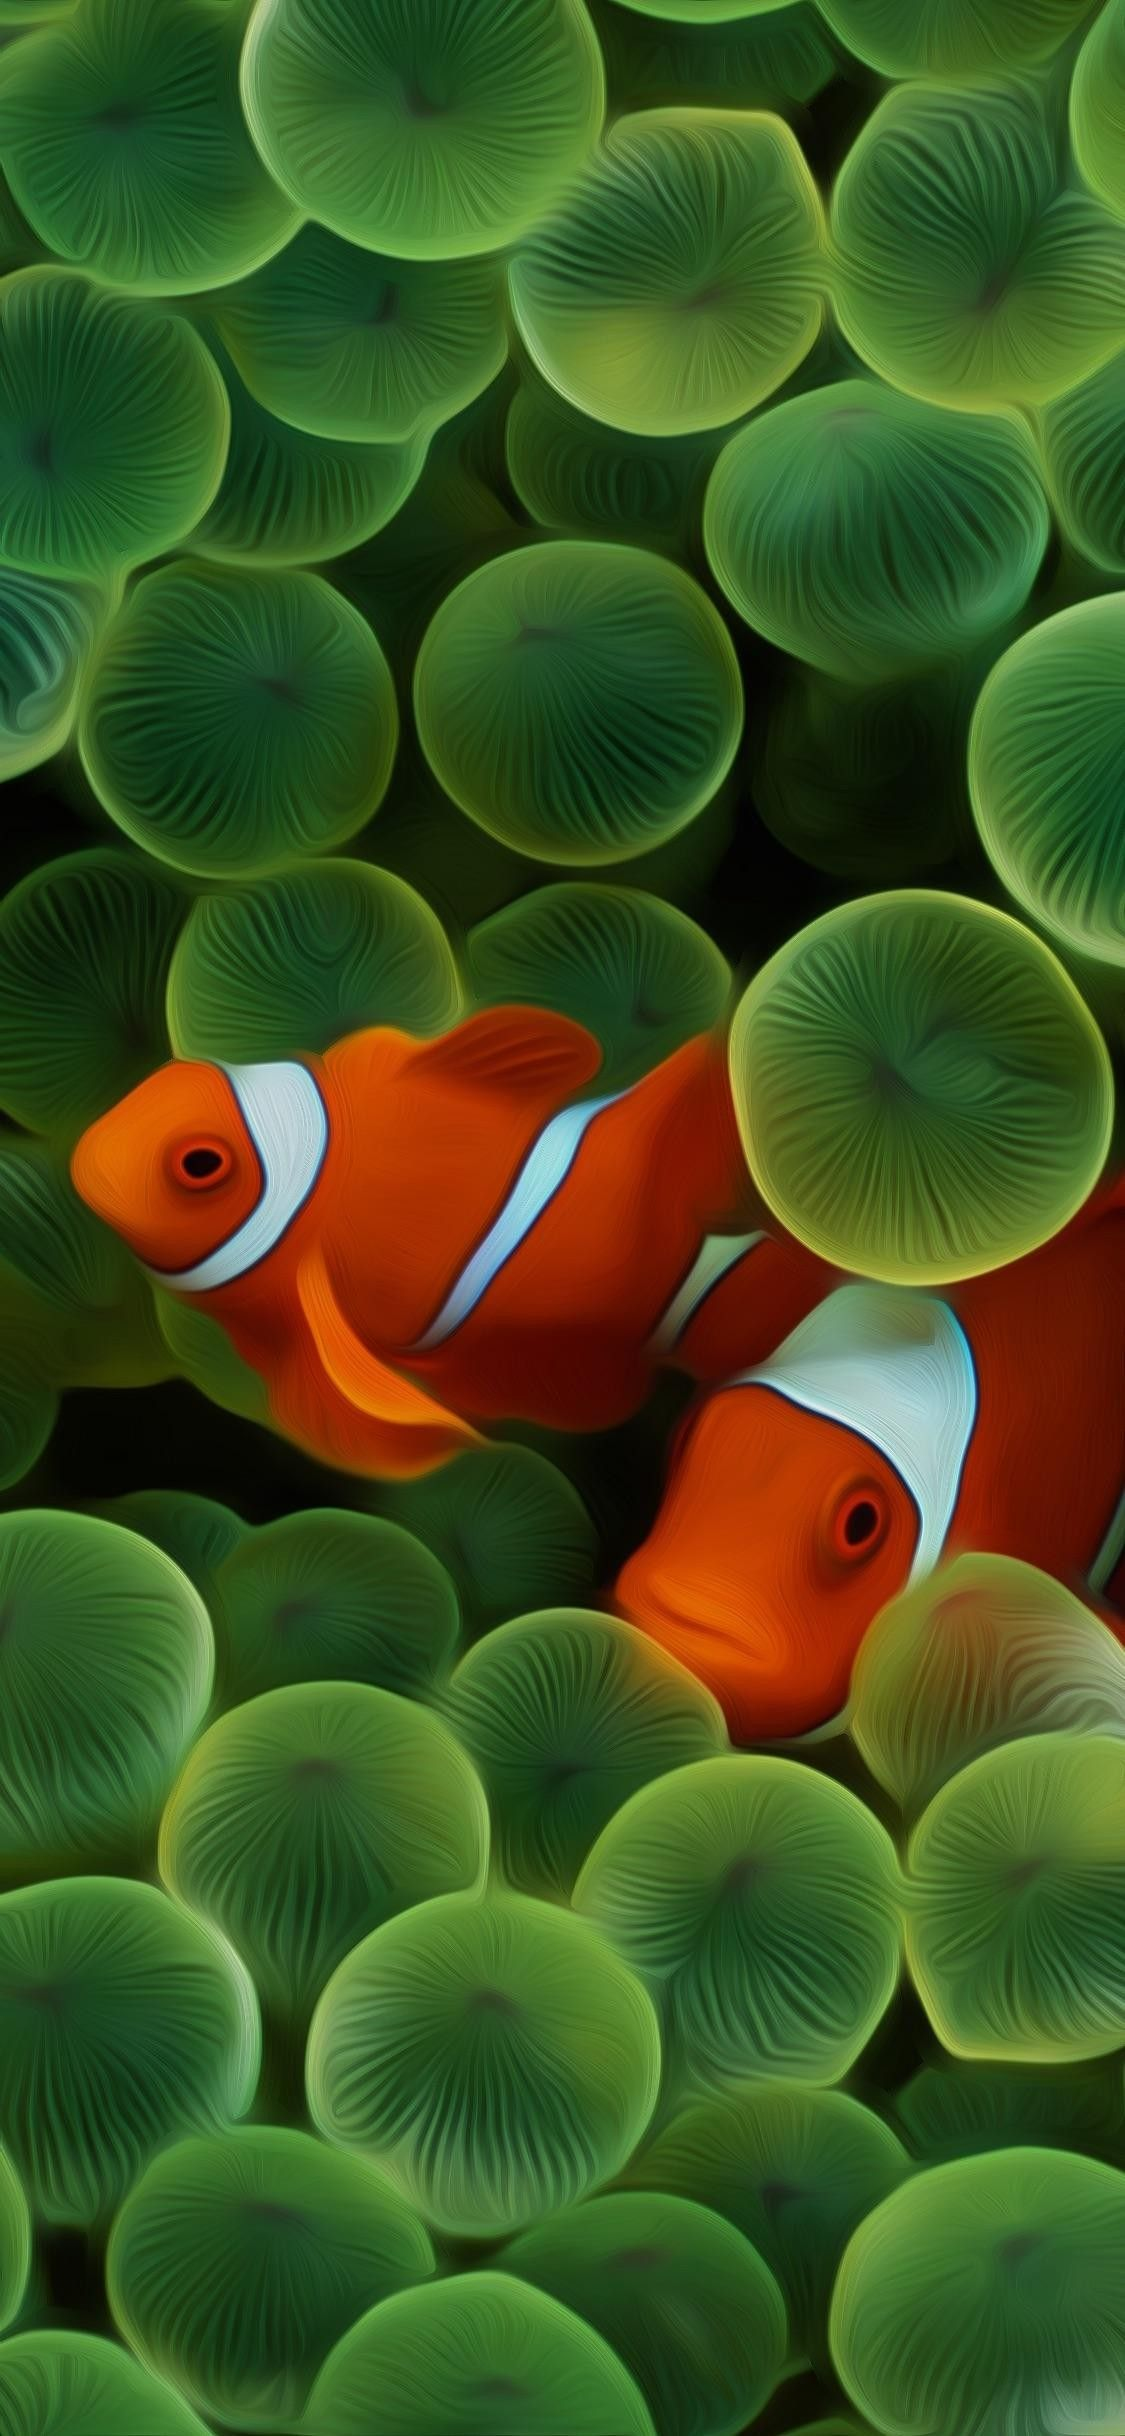 Clownfish HD Original IOS 11 IPhone X Apple Wallpaper